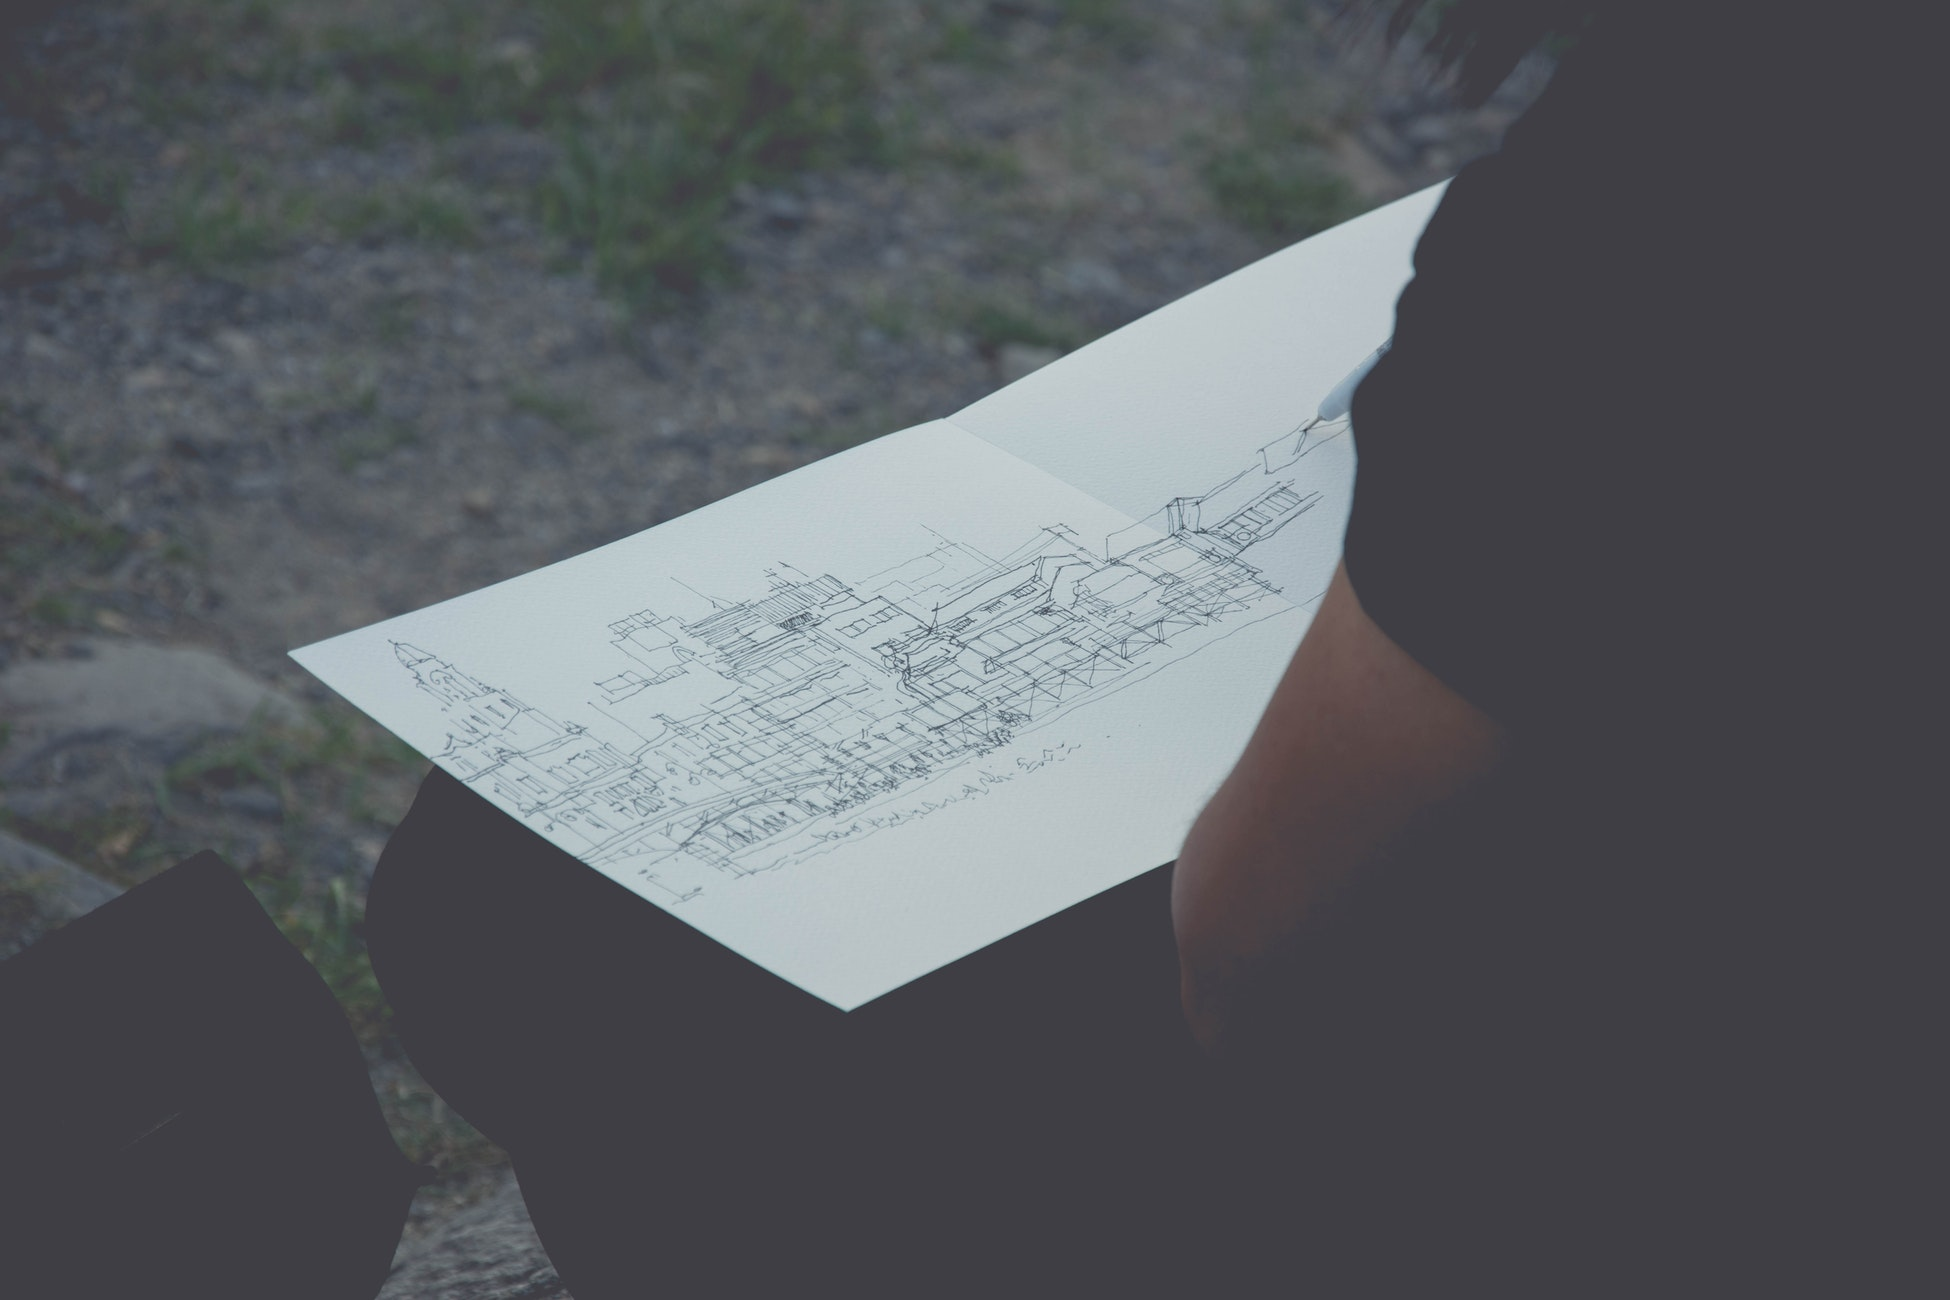 Architecture-drawing.jpg